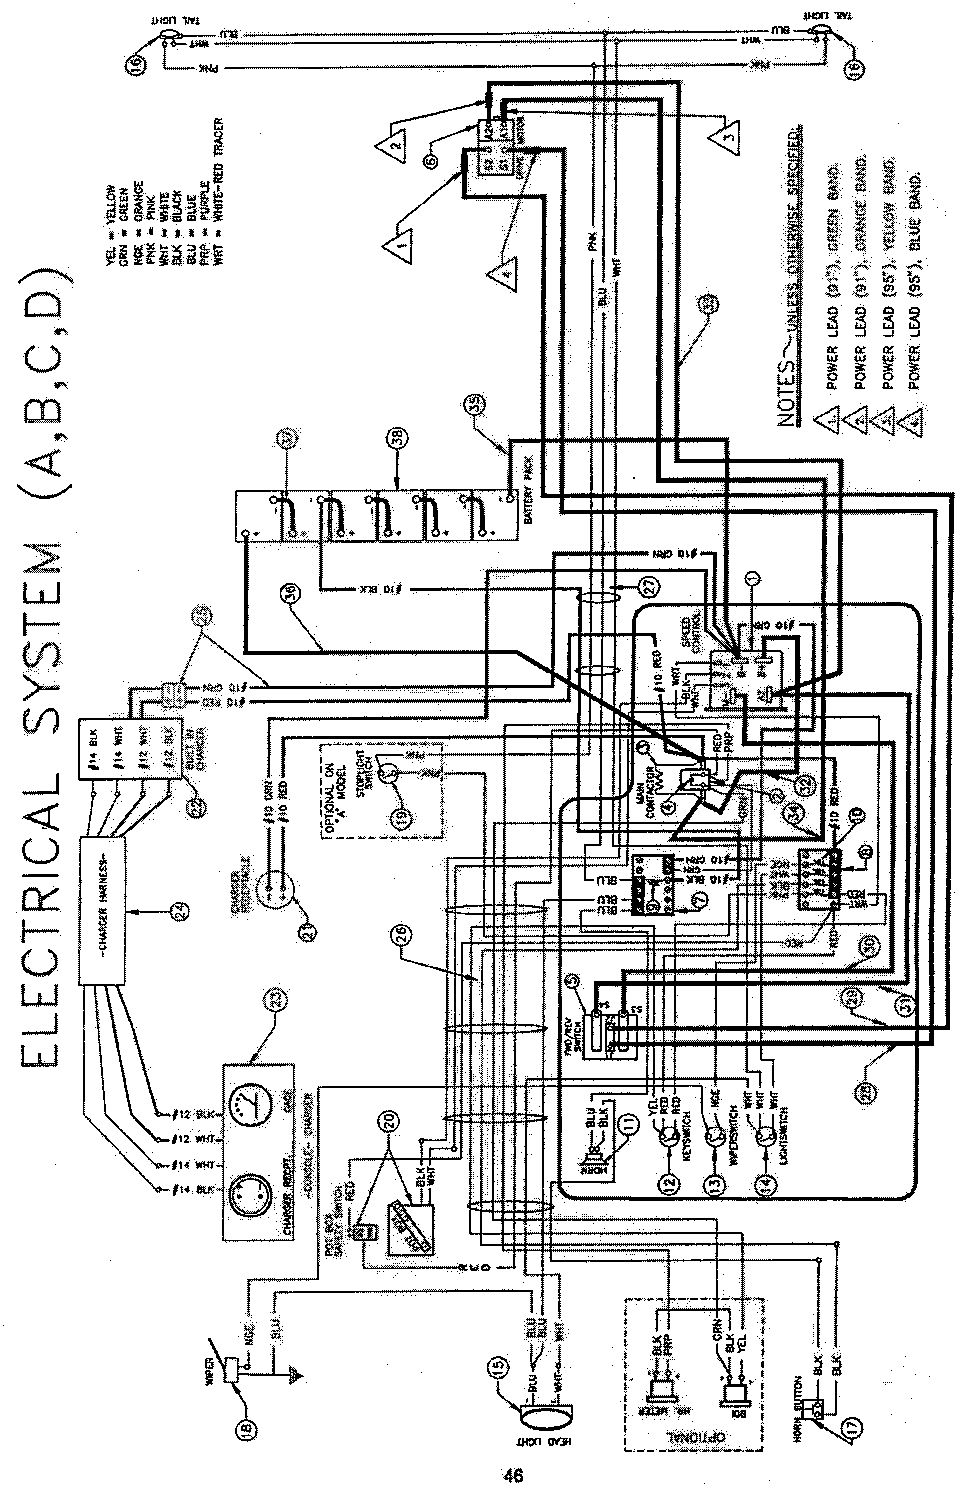 yamaha g9 golf cart wiring diagram images 1992 ezgo wiring diagram 1992 ezgo wiring diagram